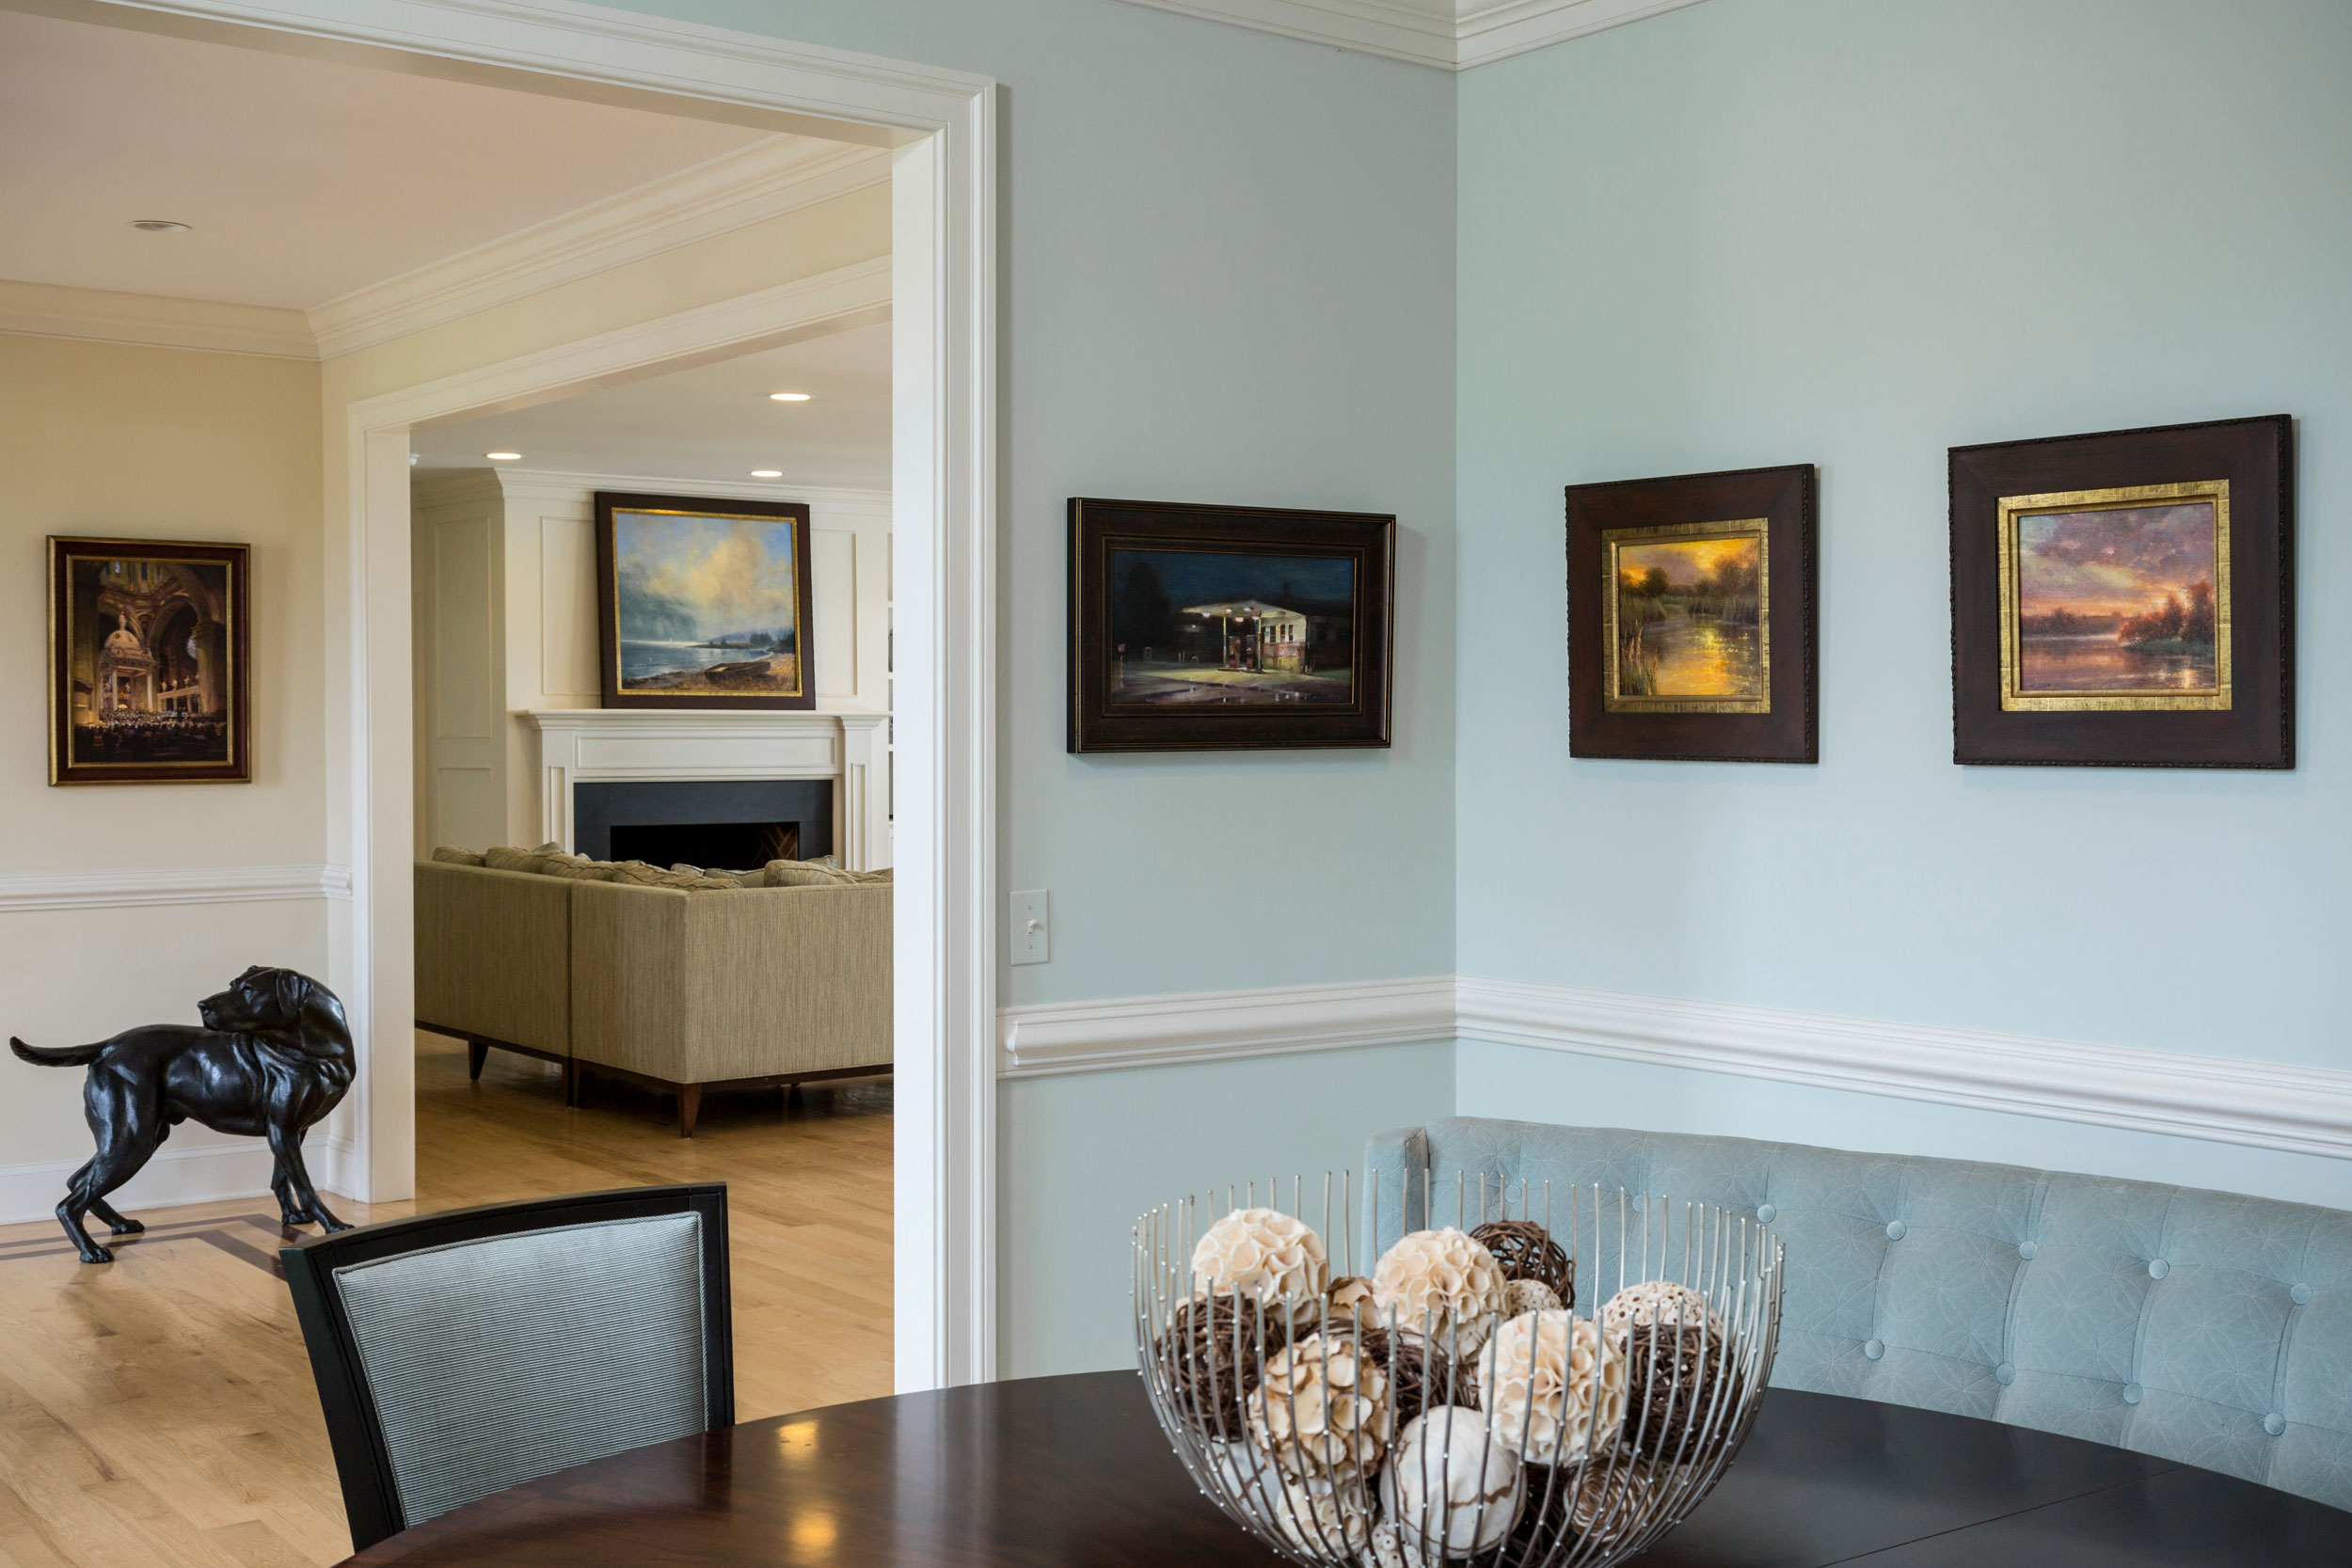 Eastern Shore home featuring artwork for Plein Air Magazine.